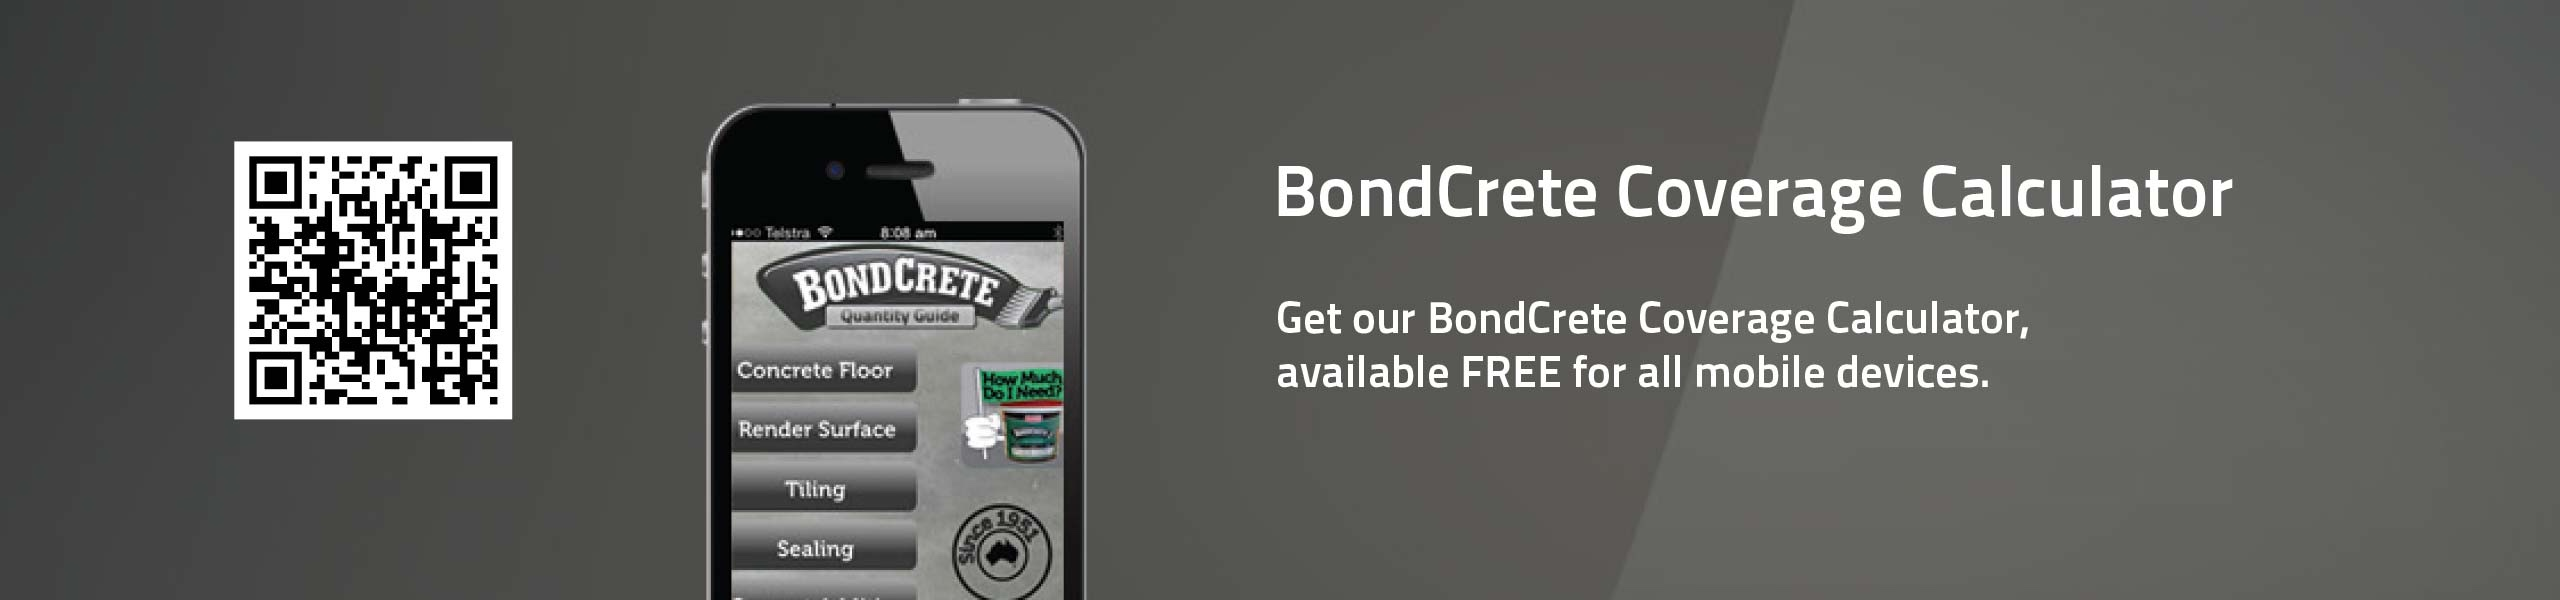 Bondcrete Coverage Calculator App Feature